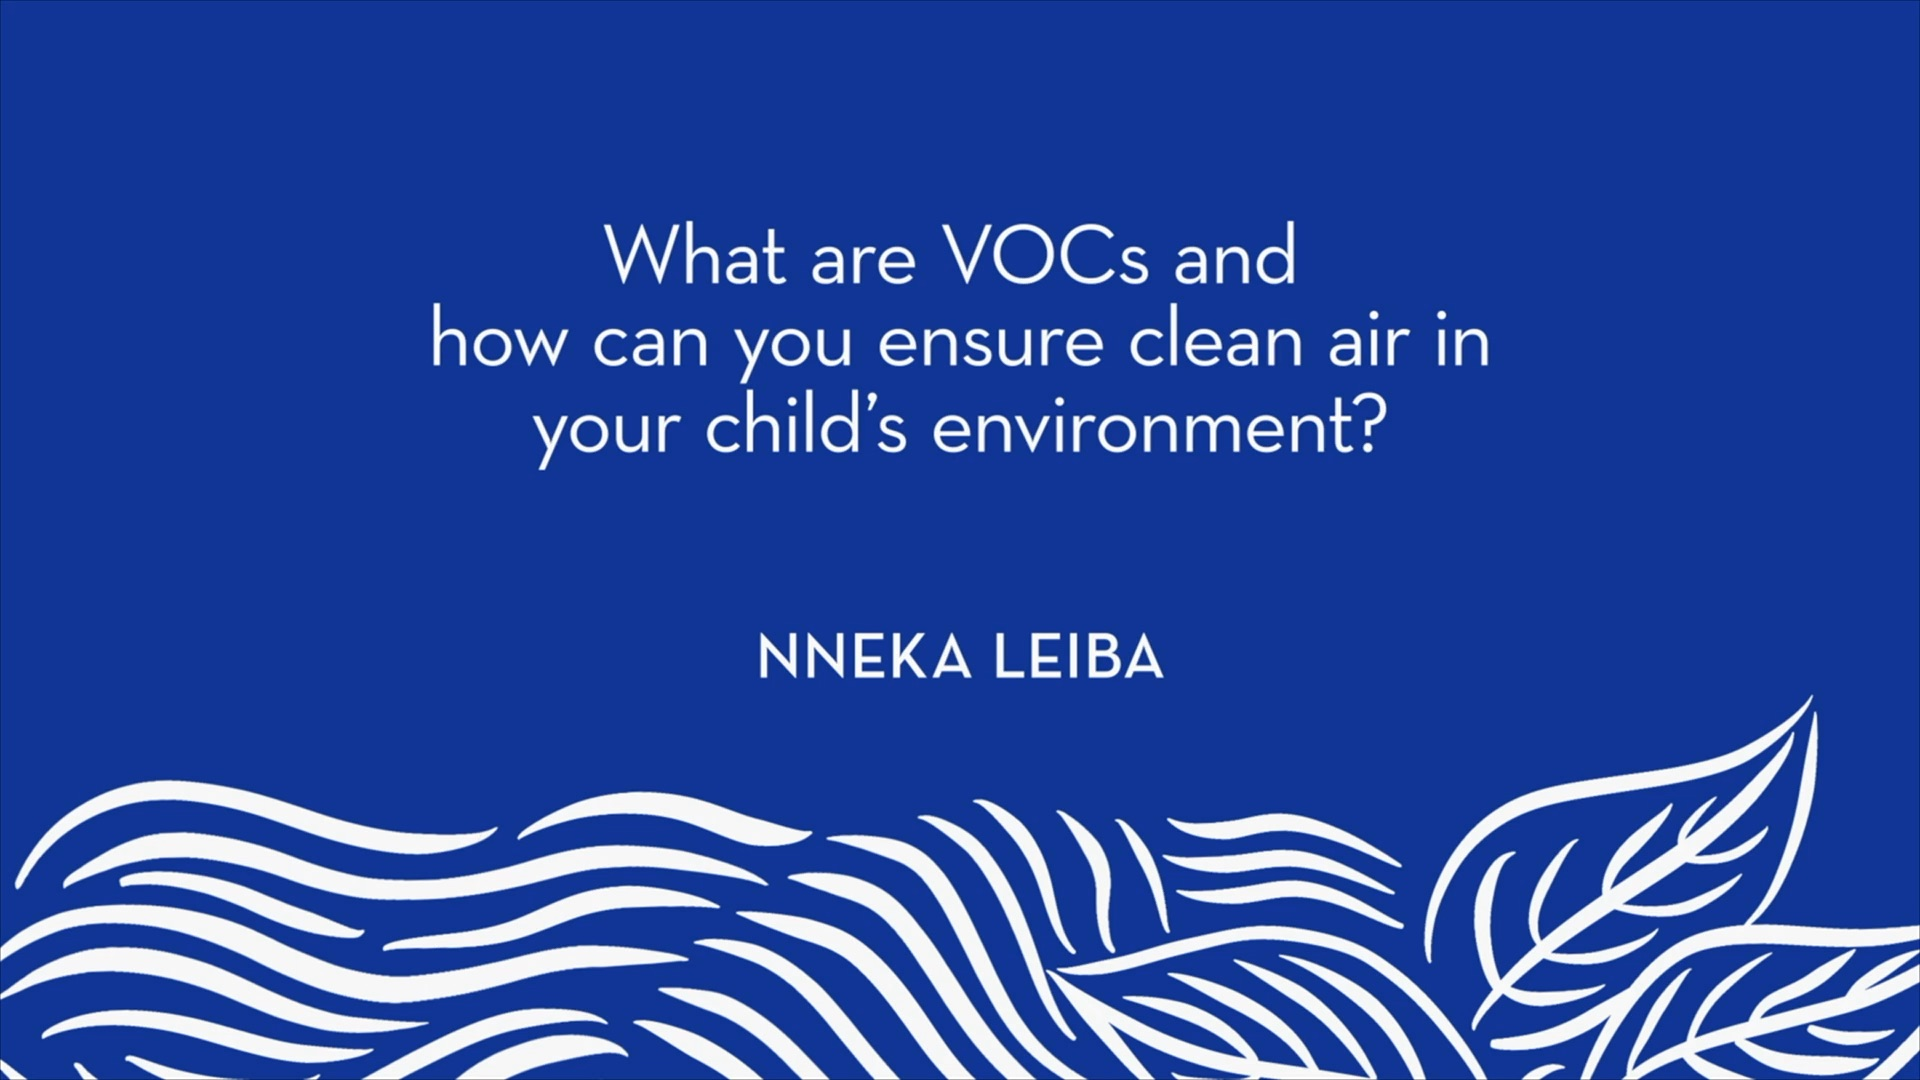 Nneka Leiba | What are VOCs and how can you ensure clean air in your child's environment?